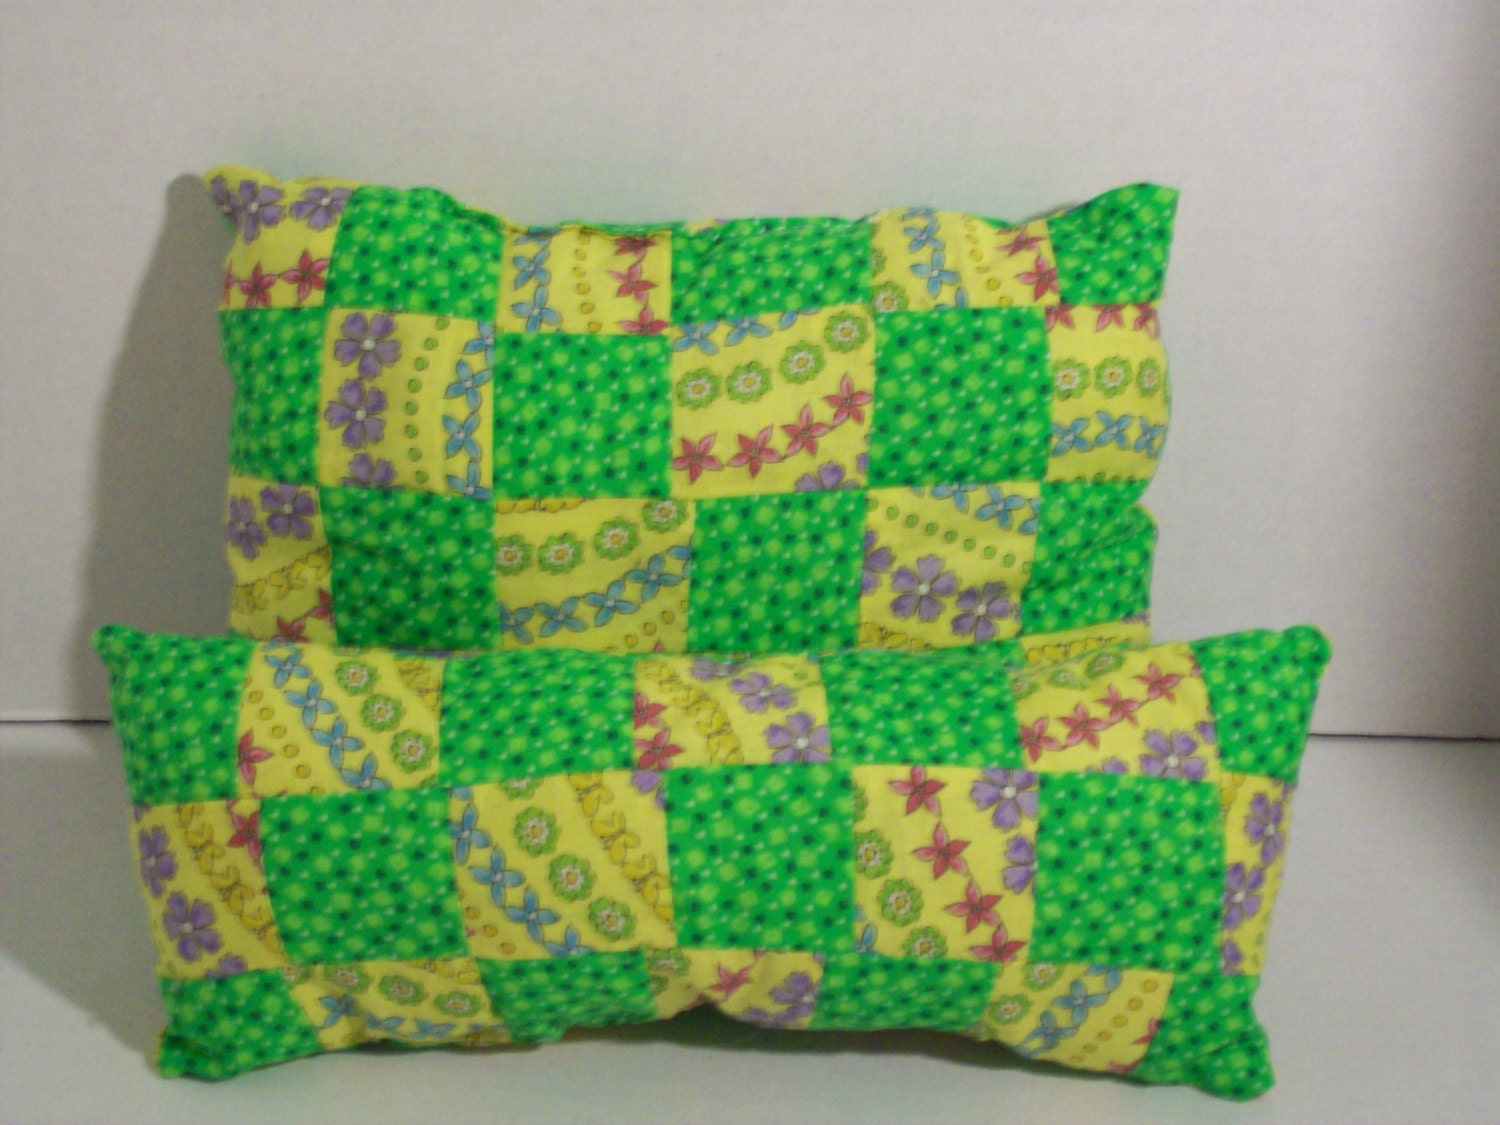 How To Make A Doll Decorative Pillow : Patchwork decorative little girls pillows doll pillows/